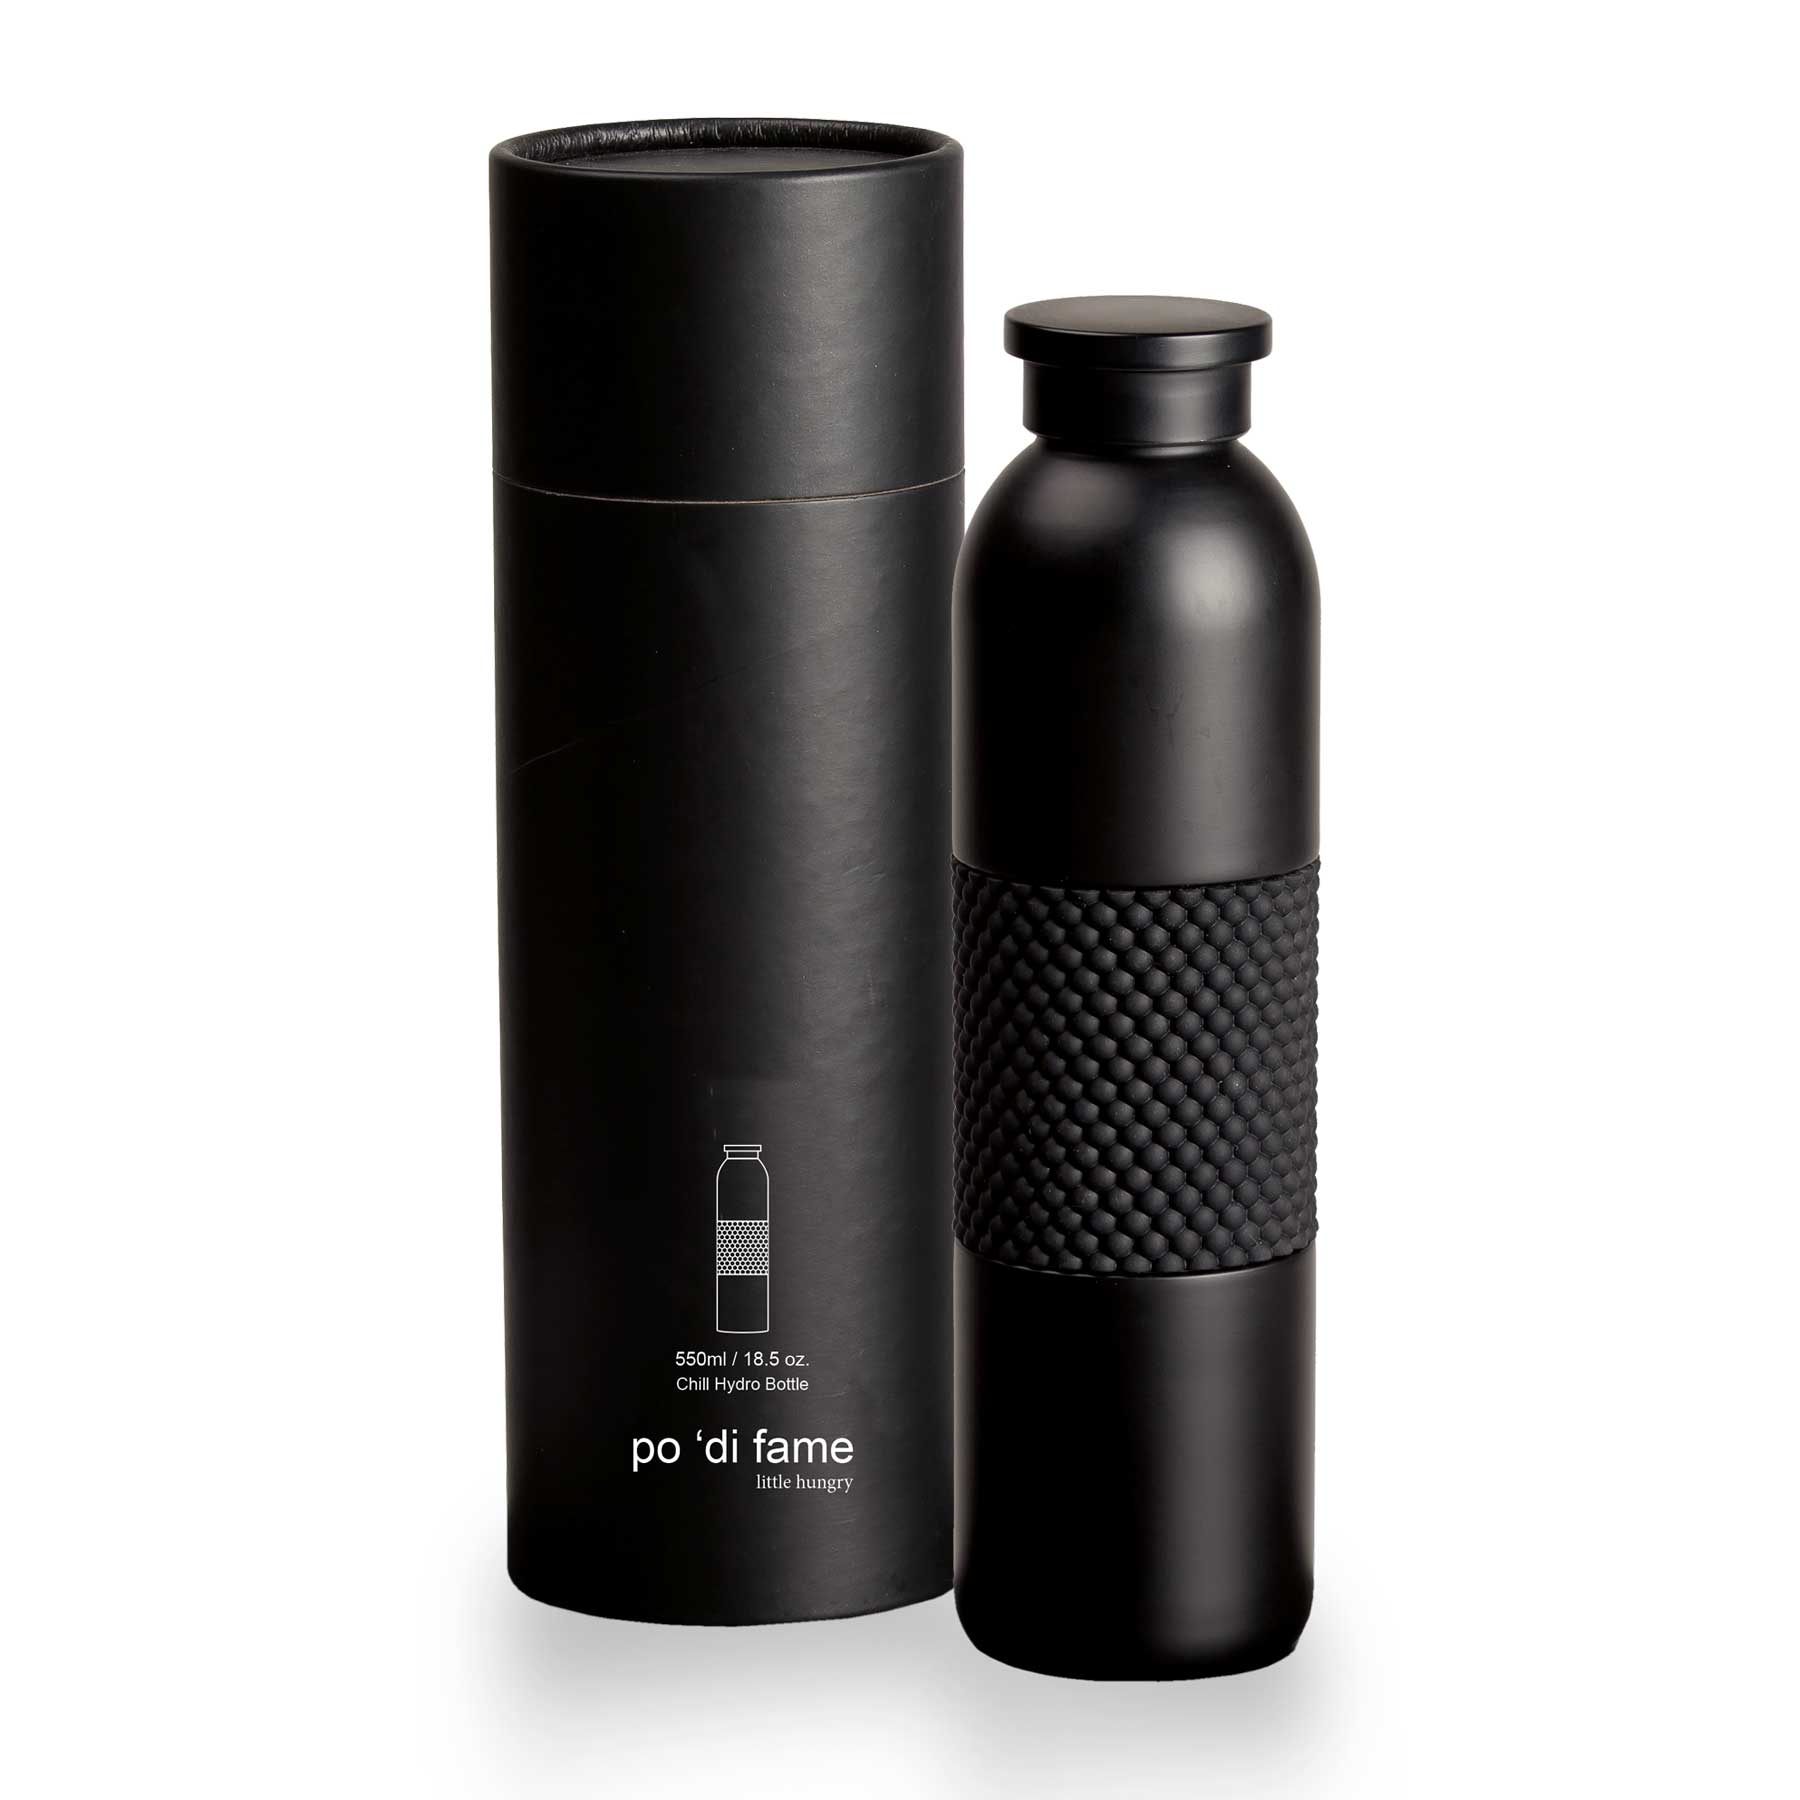 chill hydro bottle with presentational tube